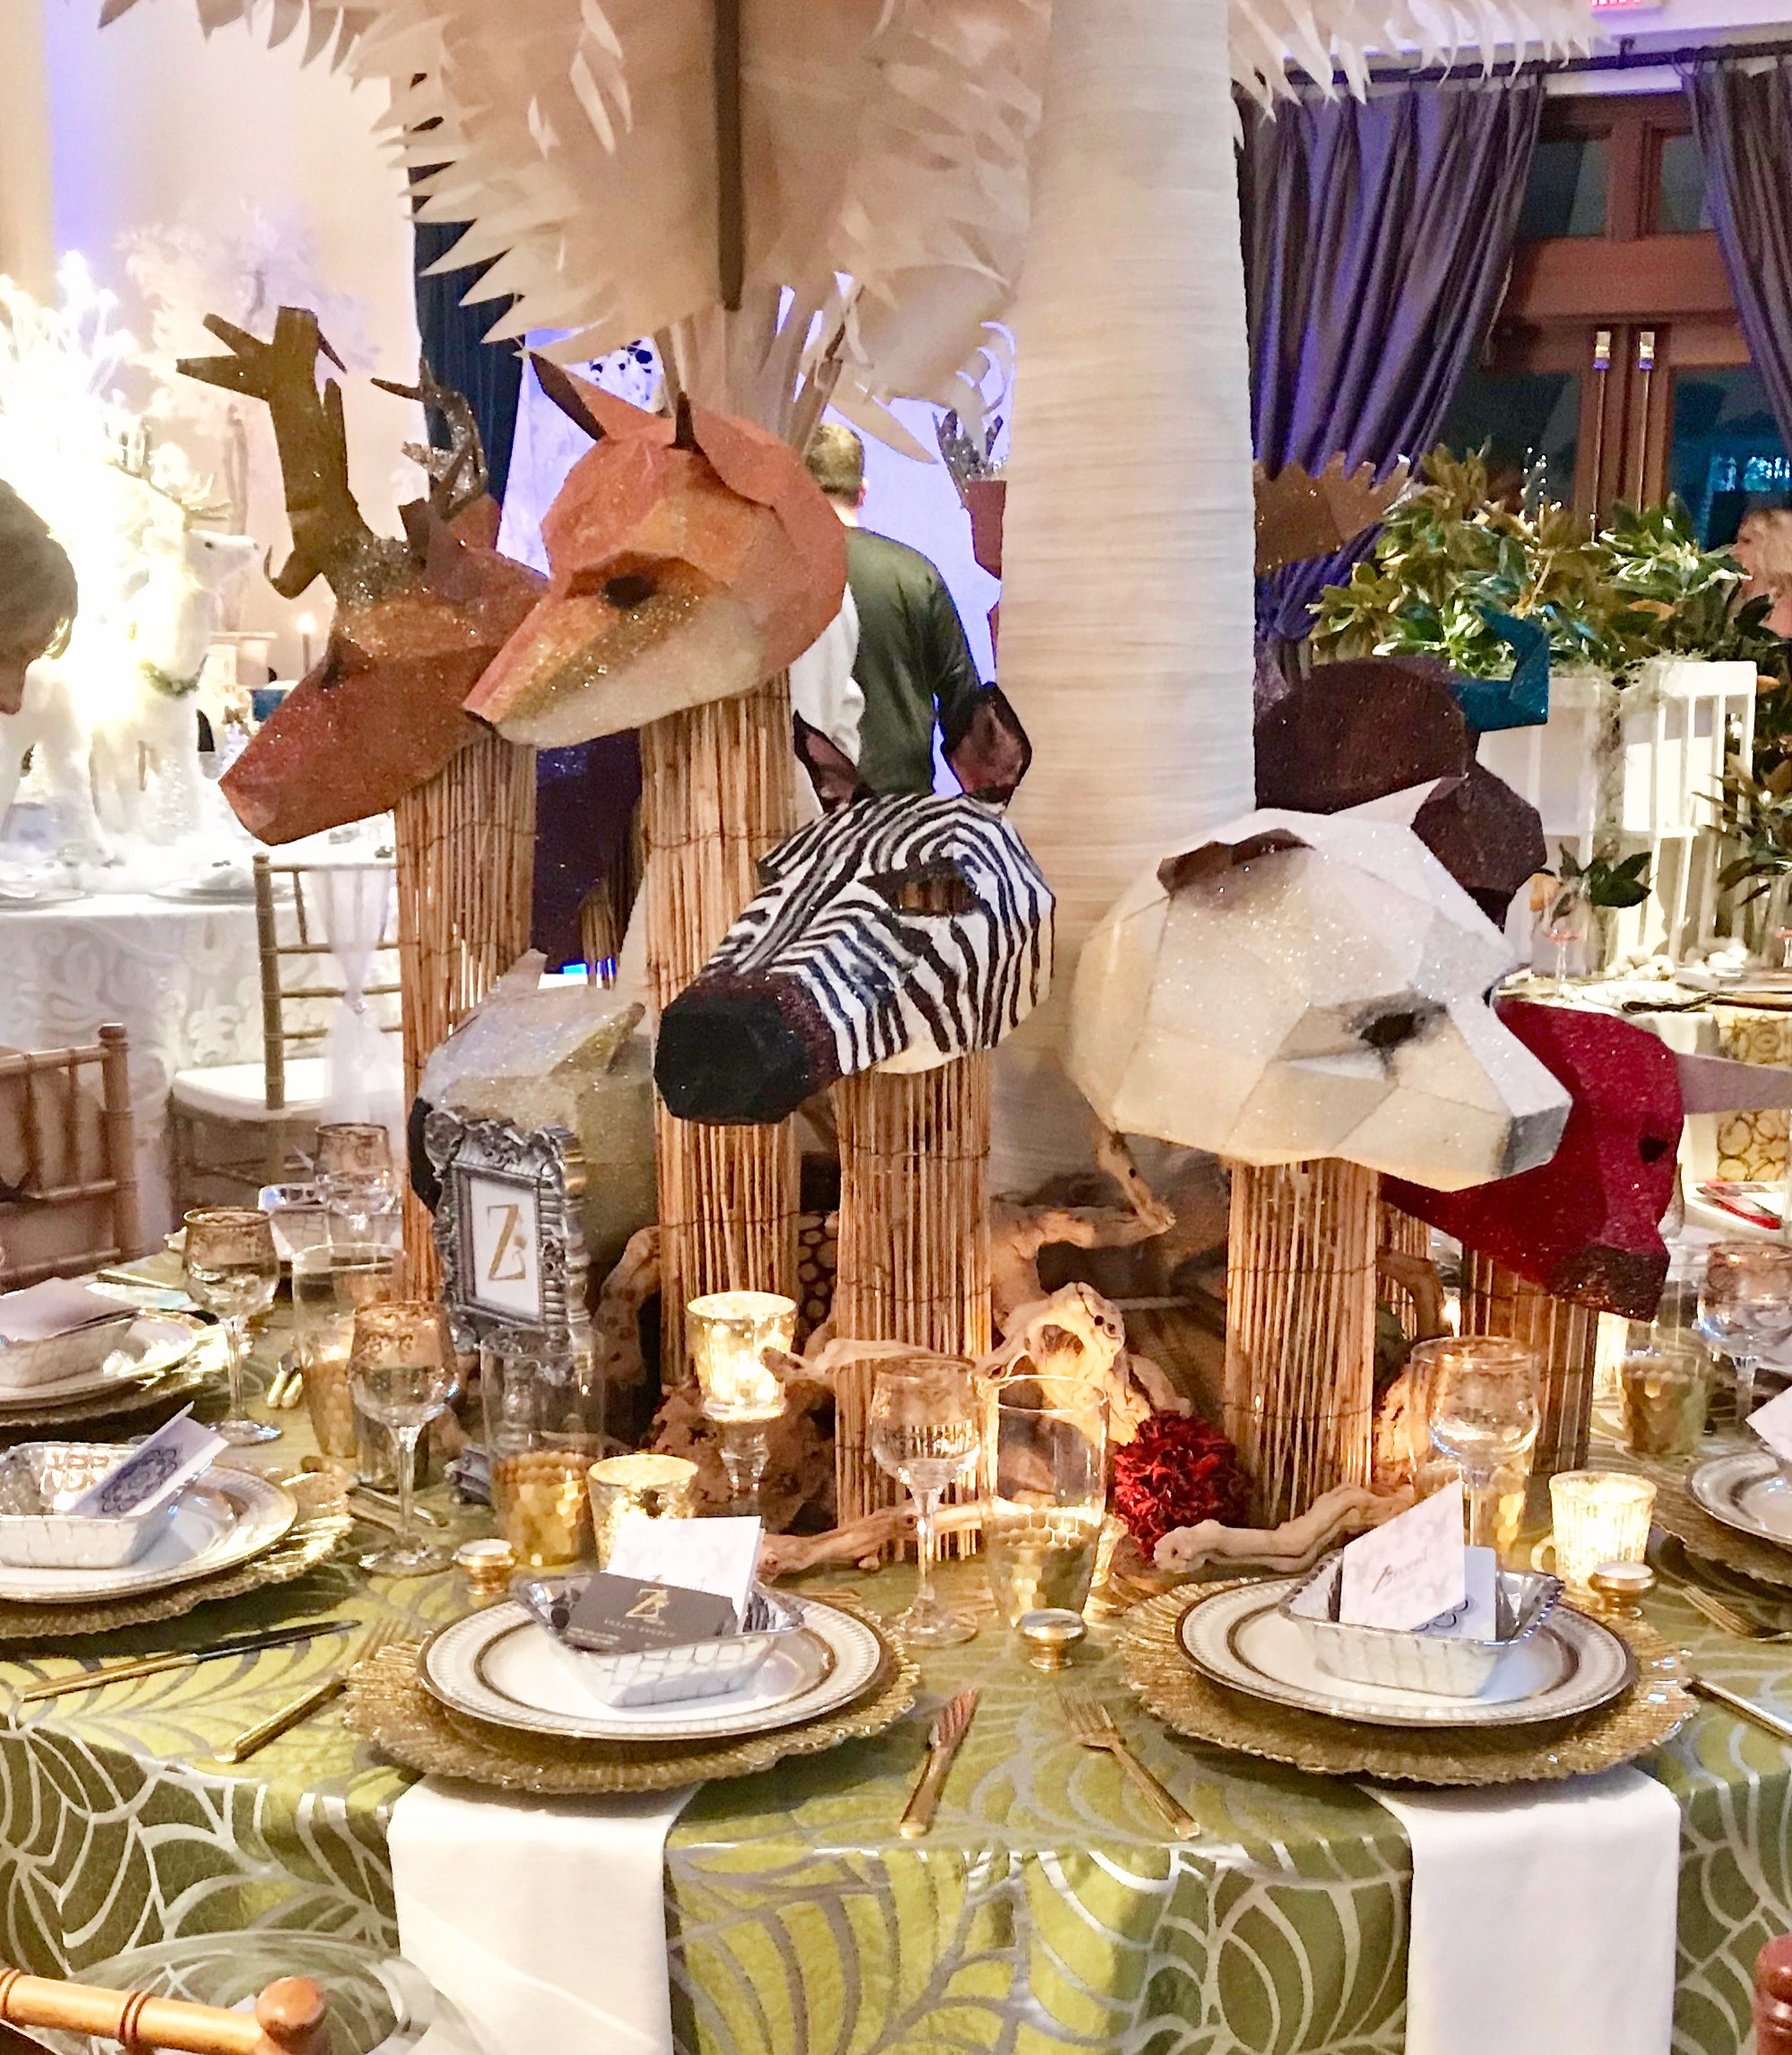 """Custom made animals painted and embellished with glitter fit the theme """"They All Asked for You"""" at the event held in the Audubon Zoo Tea Room. Each animal was designed and crafted by Nan Dupuy of Z Event Company."""